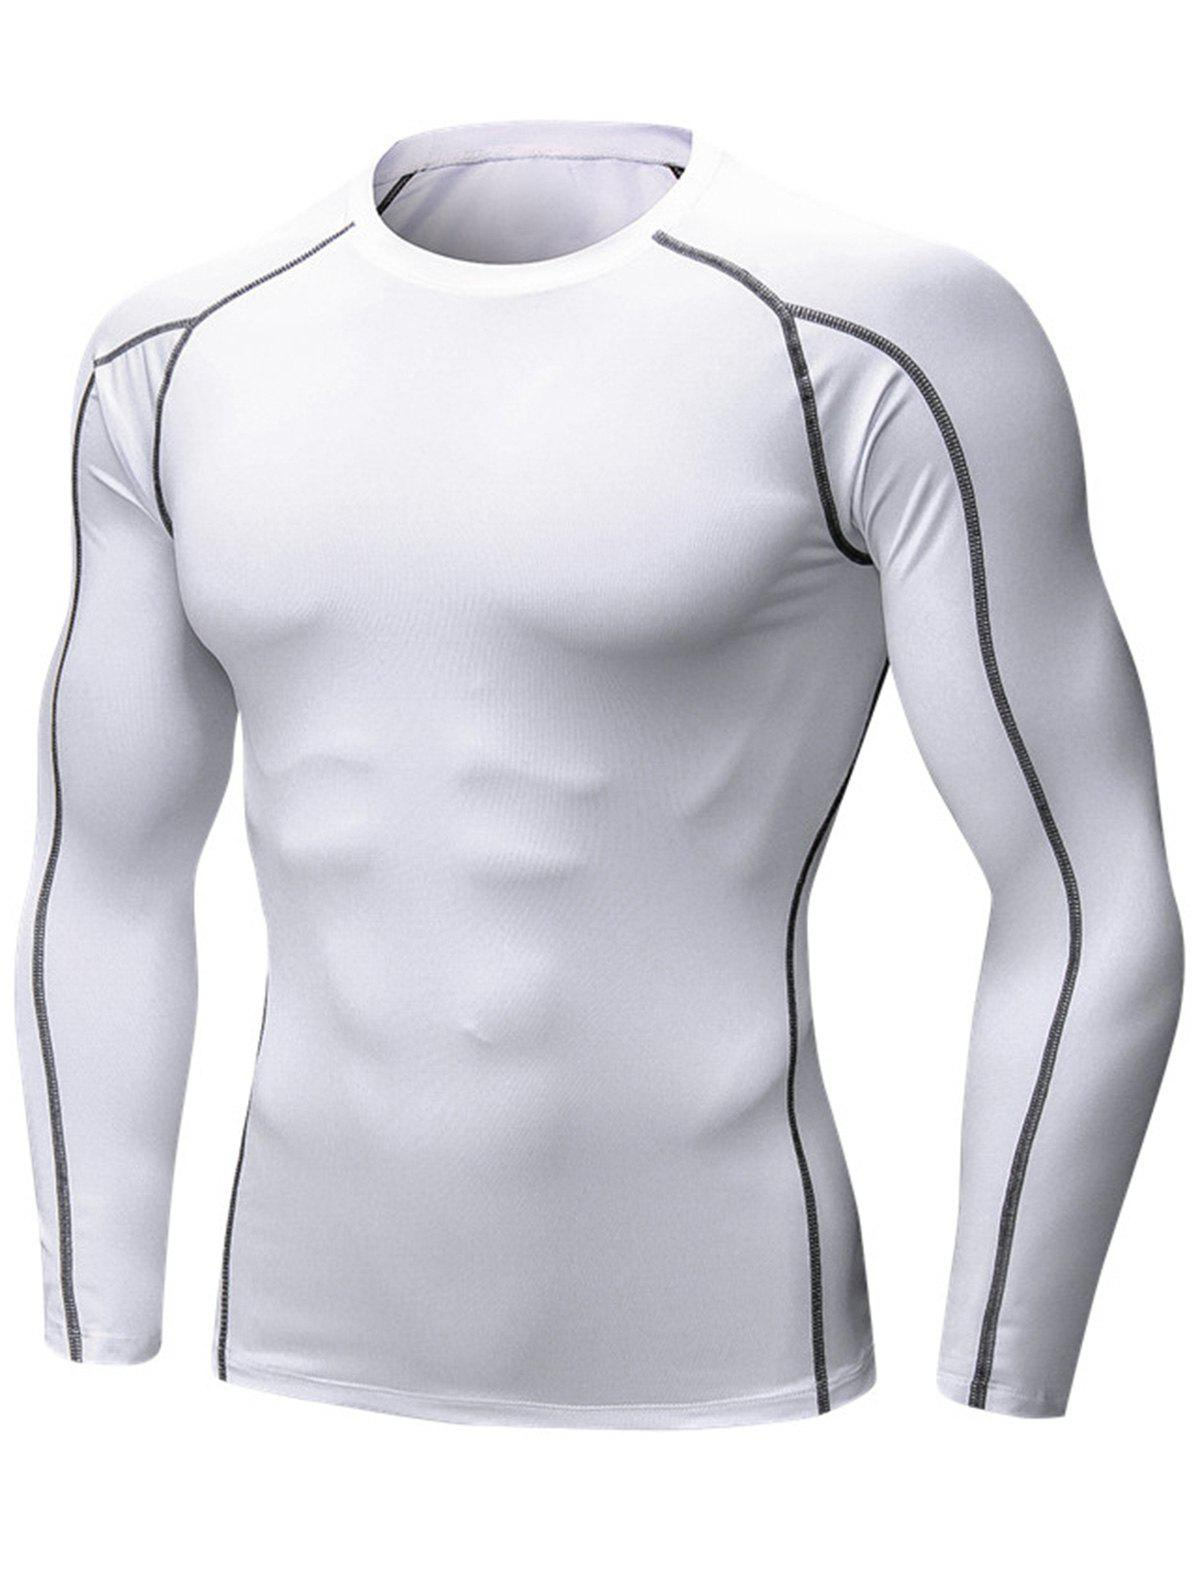 Stretchy Quick Dry Suture Long Sleeve T-shirt - WHITE 2XL